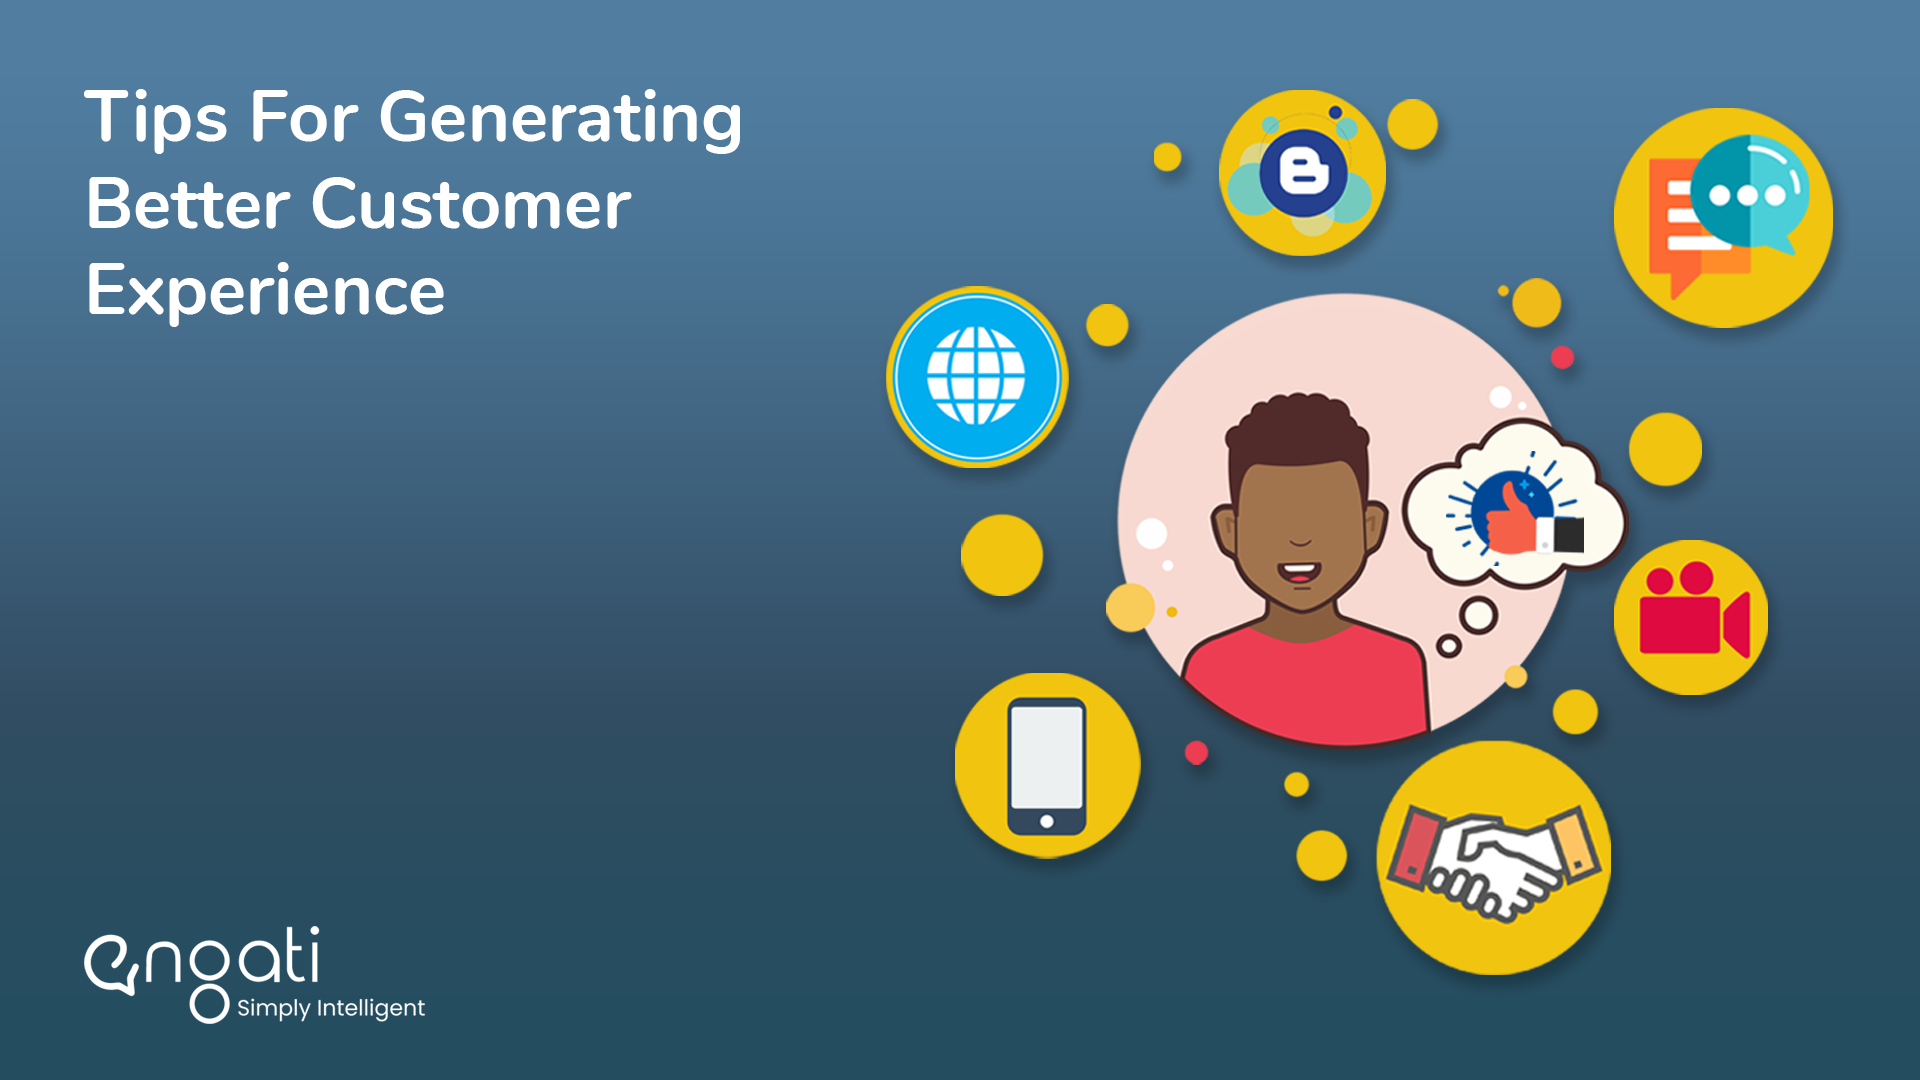 Tips for generating better customer experience